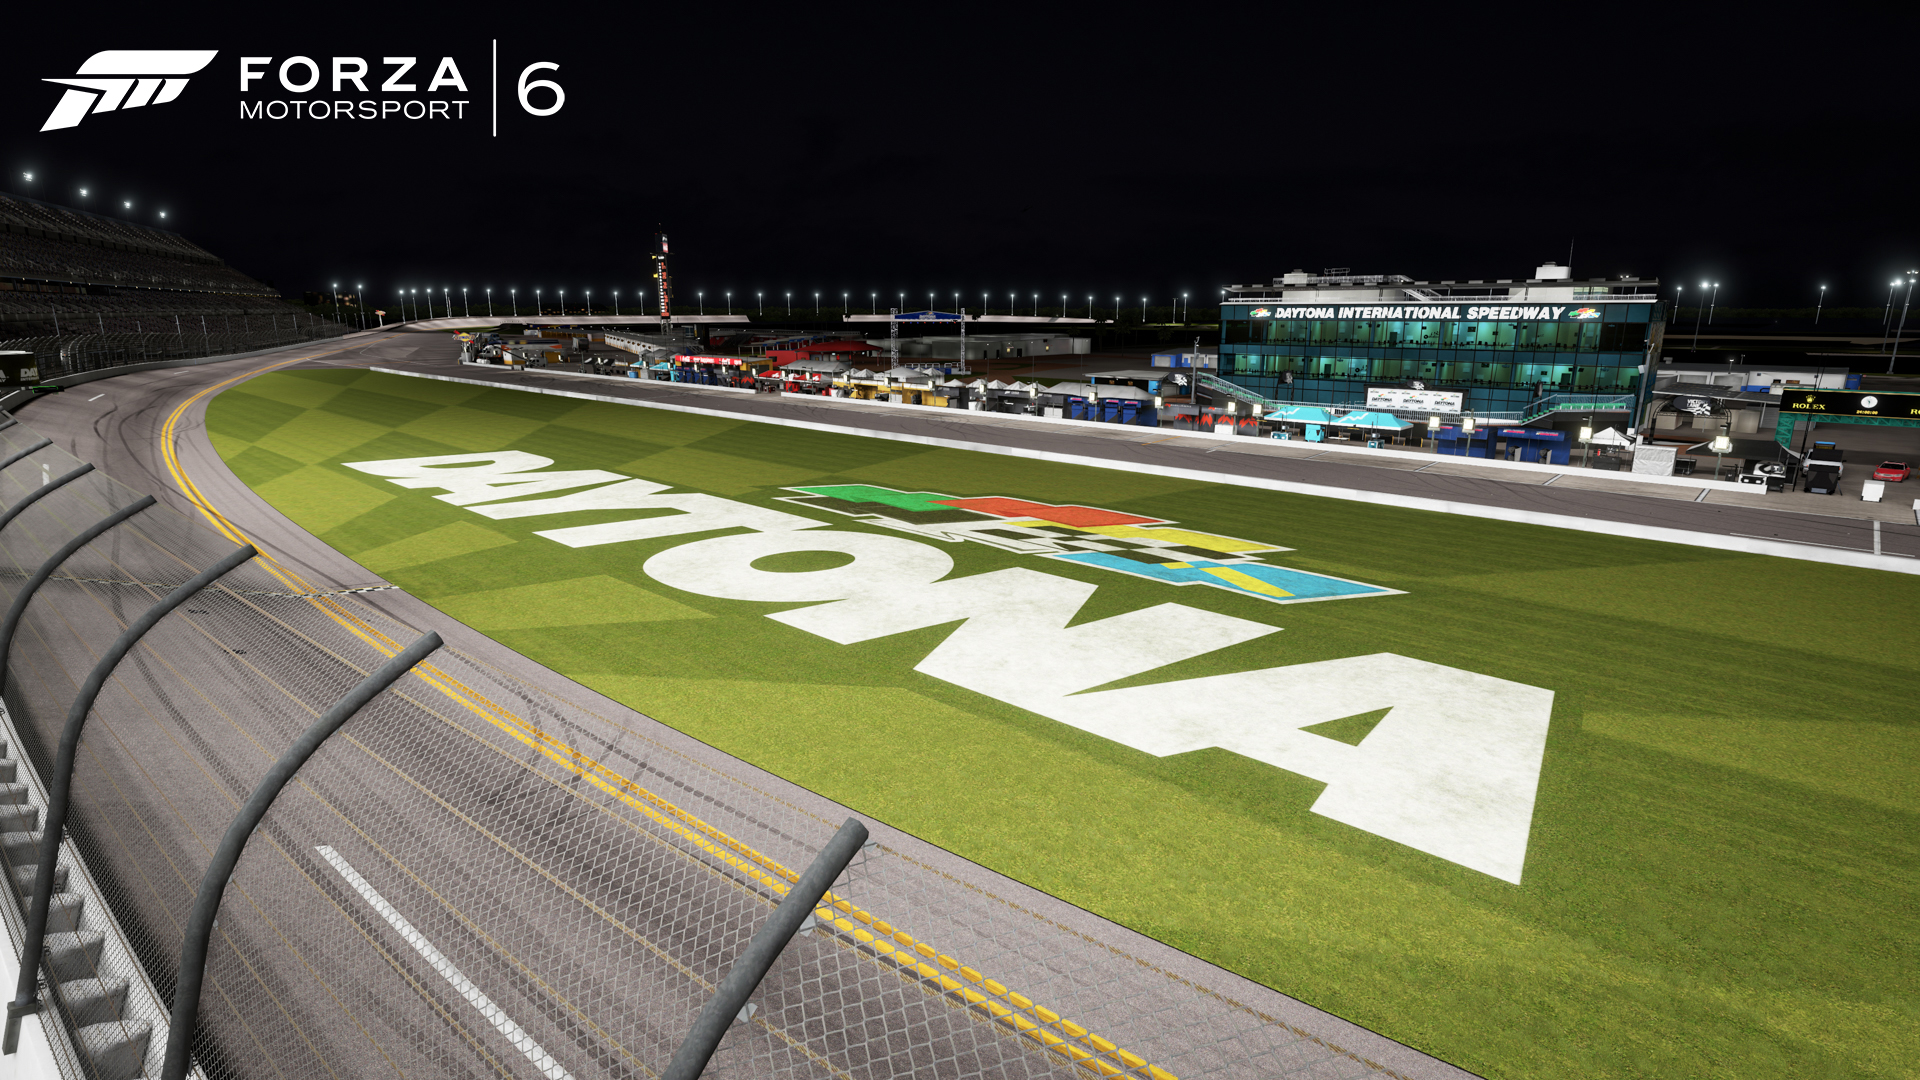 Forza motorsport 6 tracks for Speedway motors lake charles